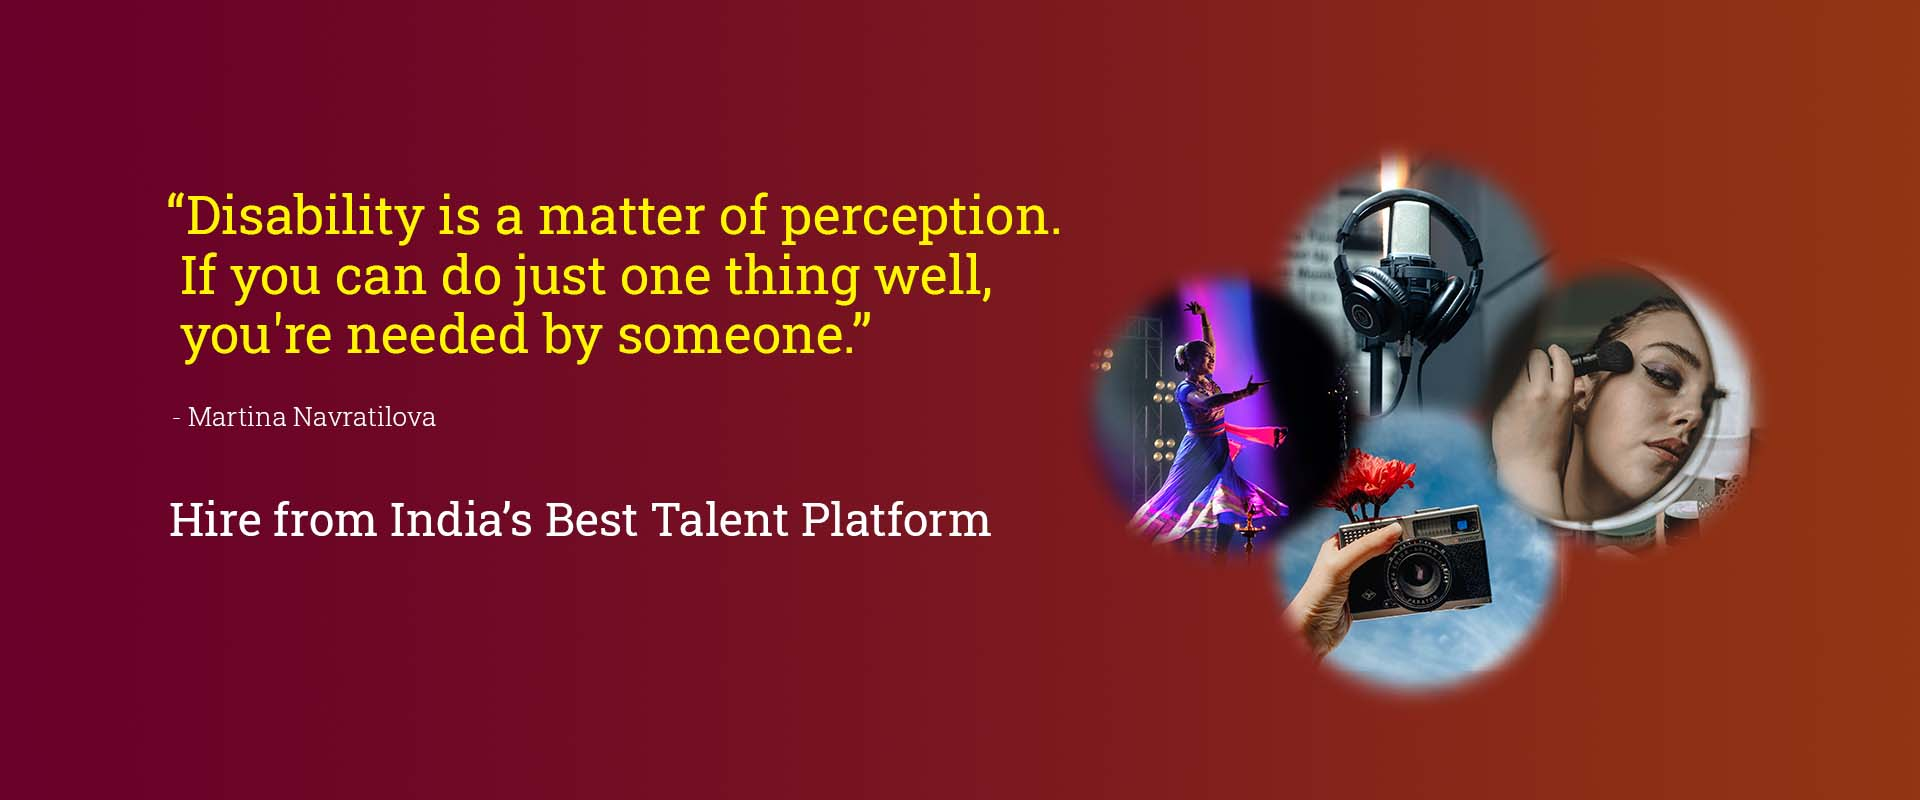 "A clickable banner with a red background and images of a camera, a model, a dancer and a voice-over artist.. All of these are depicting various talent categories. Text on it reads ""Disability is a matter of perception. If you can do just one thing well, you're needed by someone- a quote by Martina Navratilova."" Additional text reads- "" Hire from India's Best Talent Platform."" The banner redirects you to the page where all Talent categories are listed."